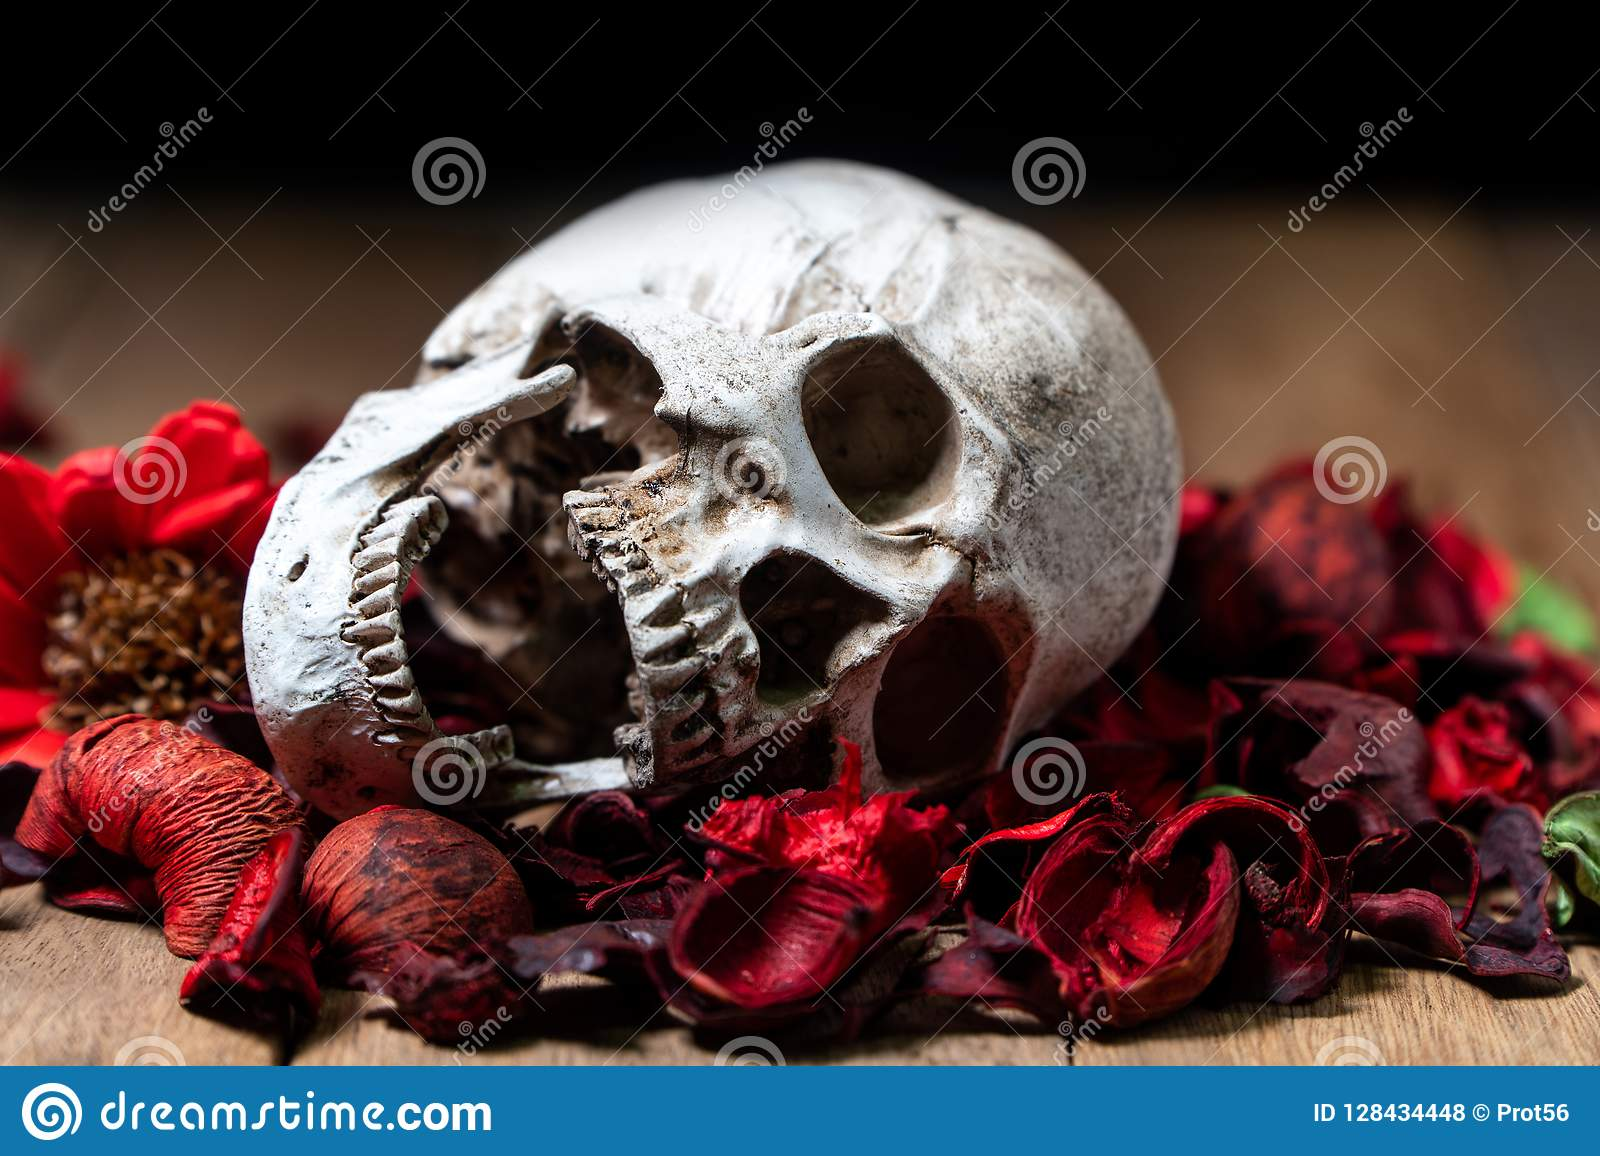 In front of human skull placed on red dried flowers on the wooden background.concept of death and Halloween.